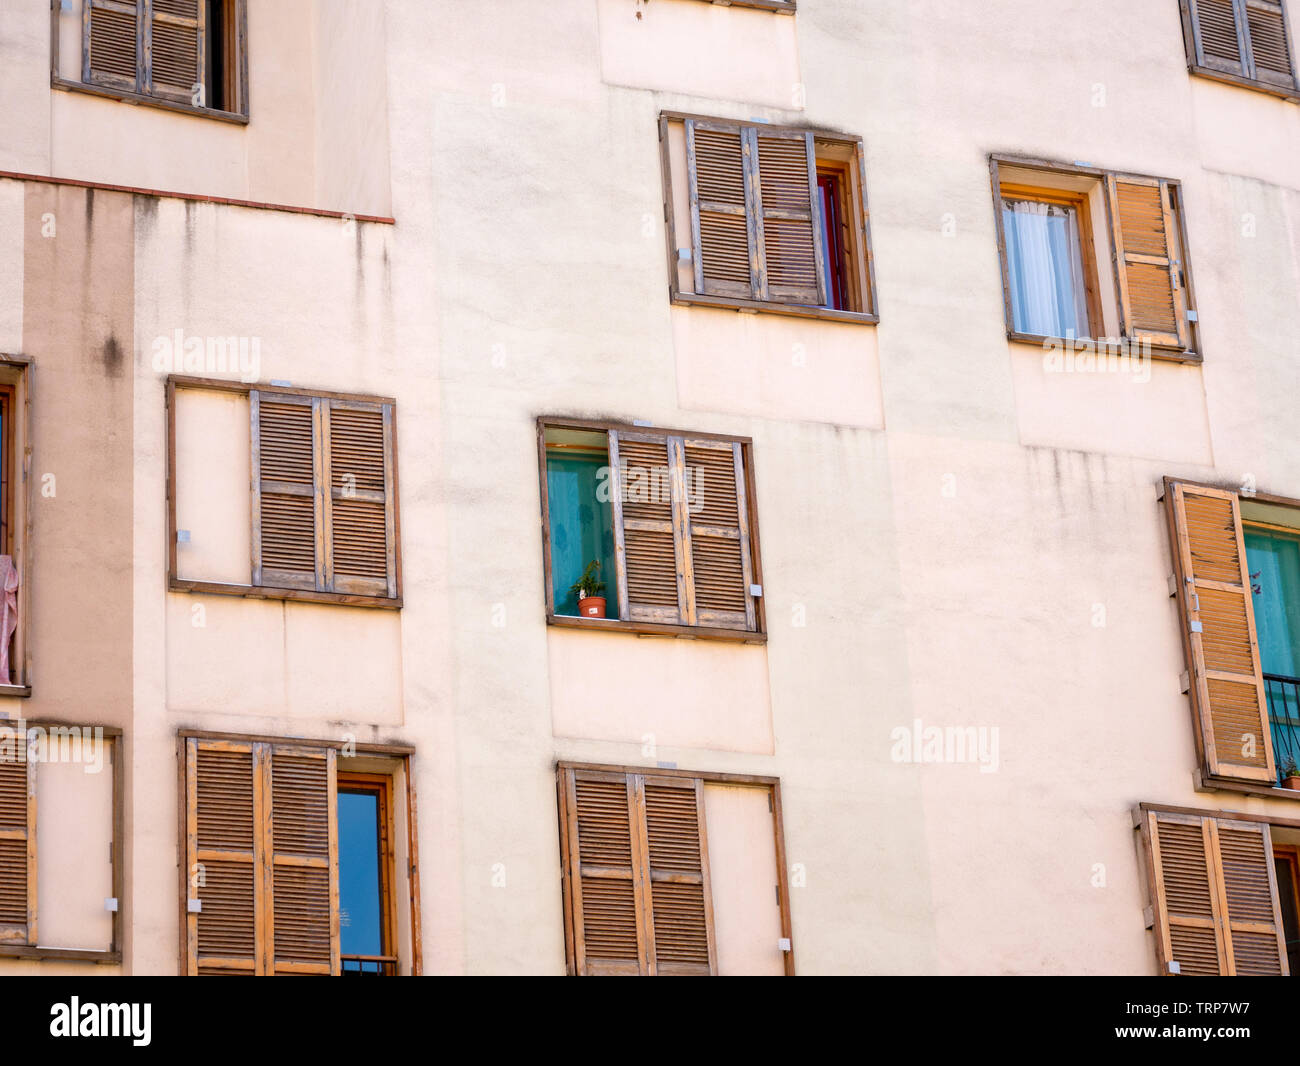 Building / Many Windows on residential building / Building exterior, Barcelona,Spain Stock Photo